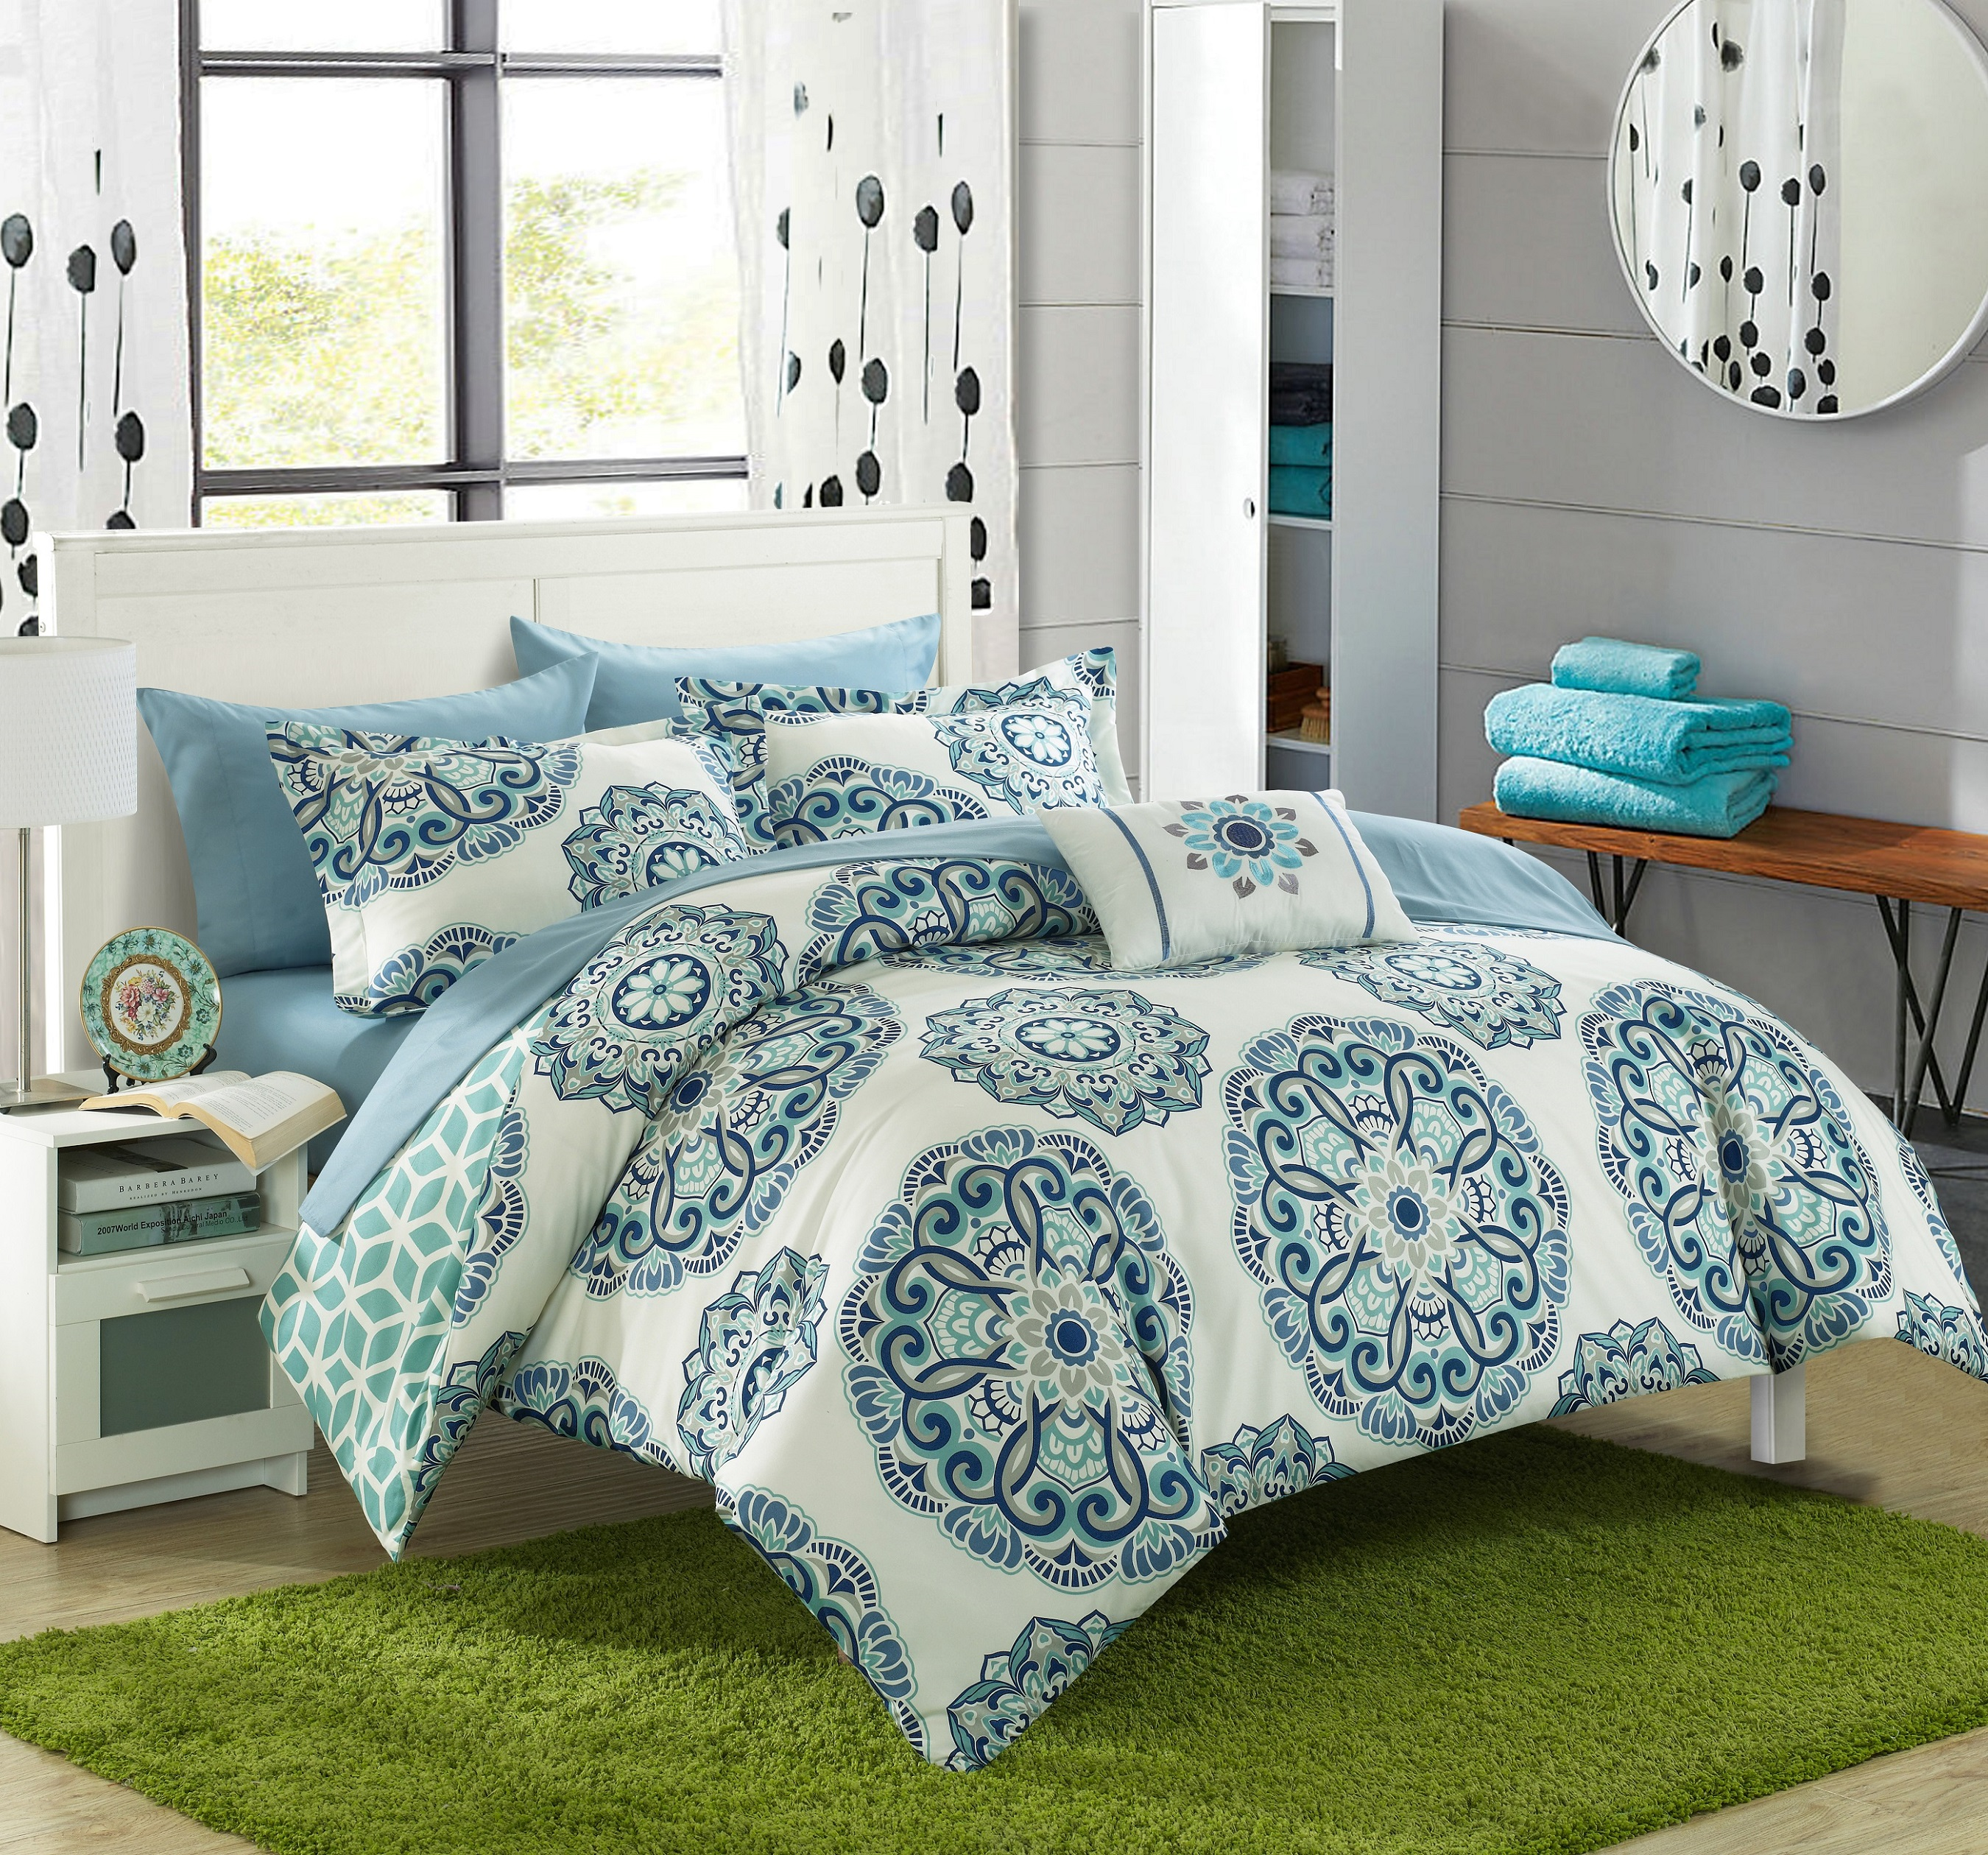 Chic Home Catalonia 6 Piece Reversible Bed in a Bag Comforter Set